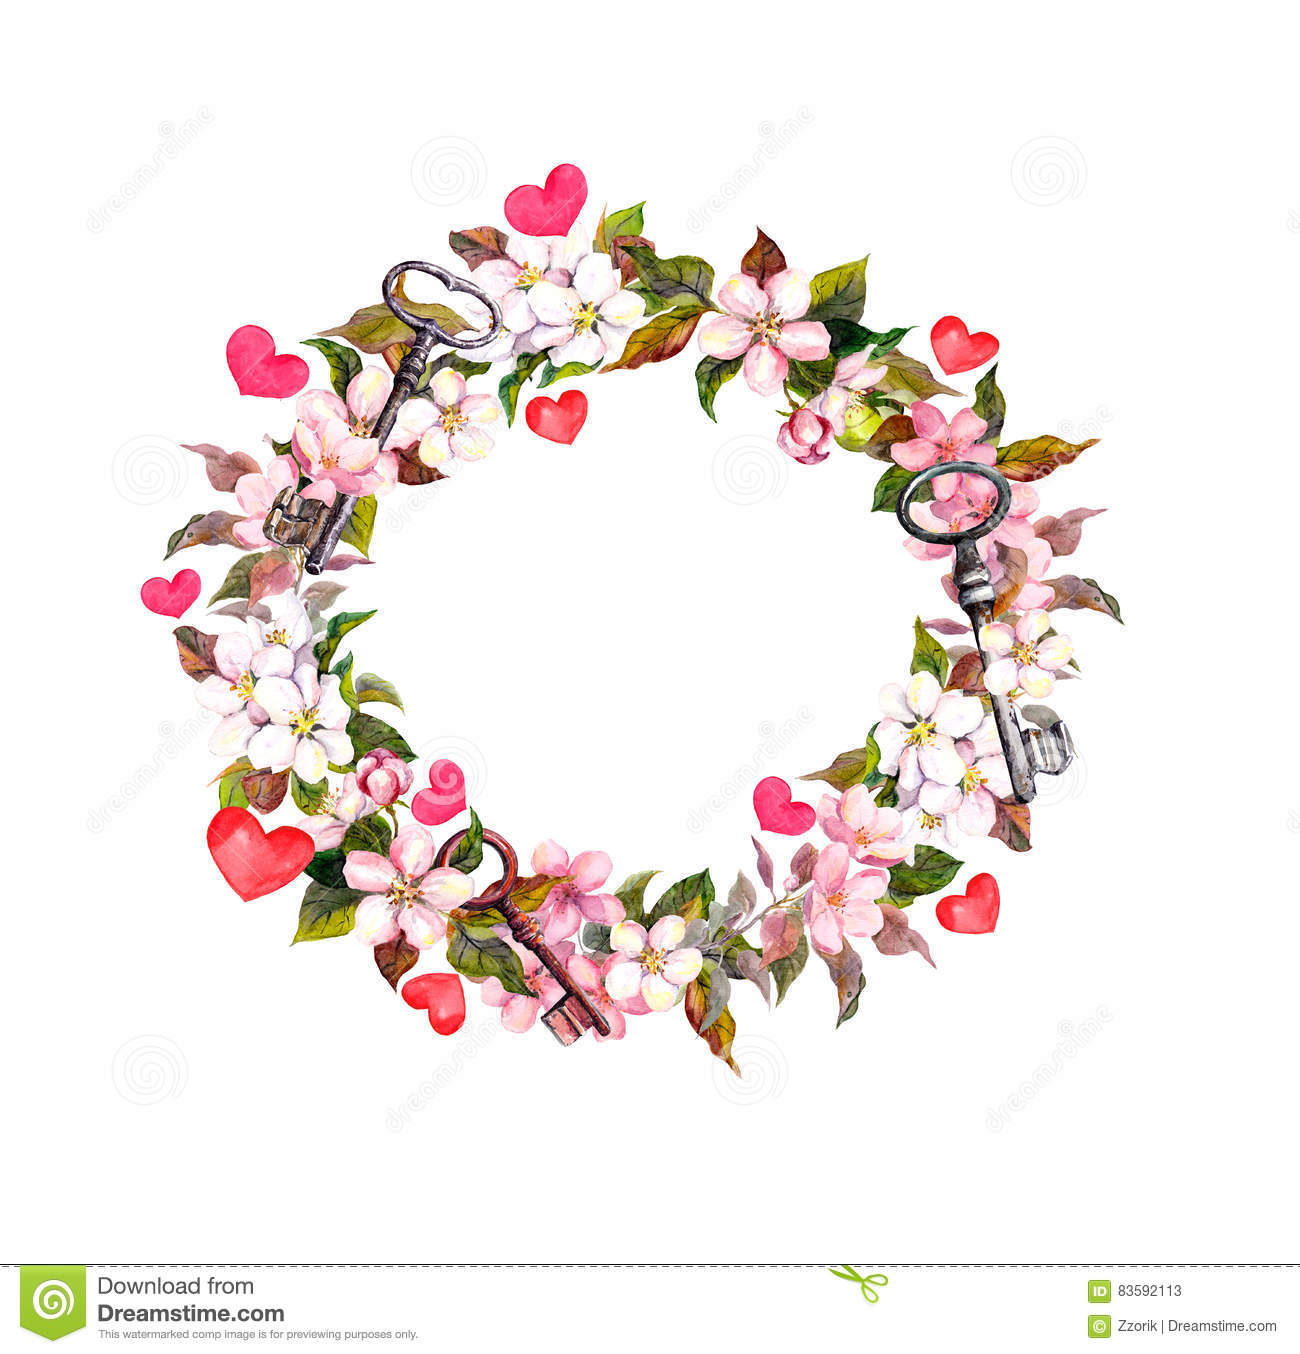 Floral Wreath With Pink Flowers Feathers Hearts Keys Watercolor